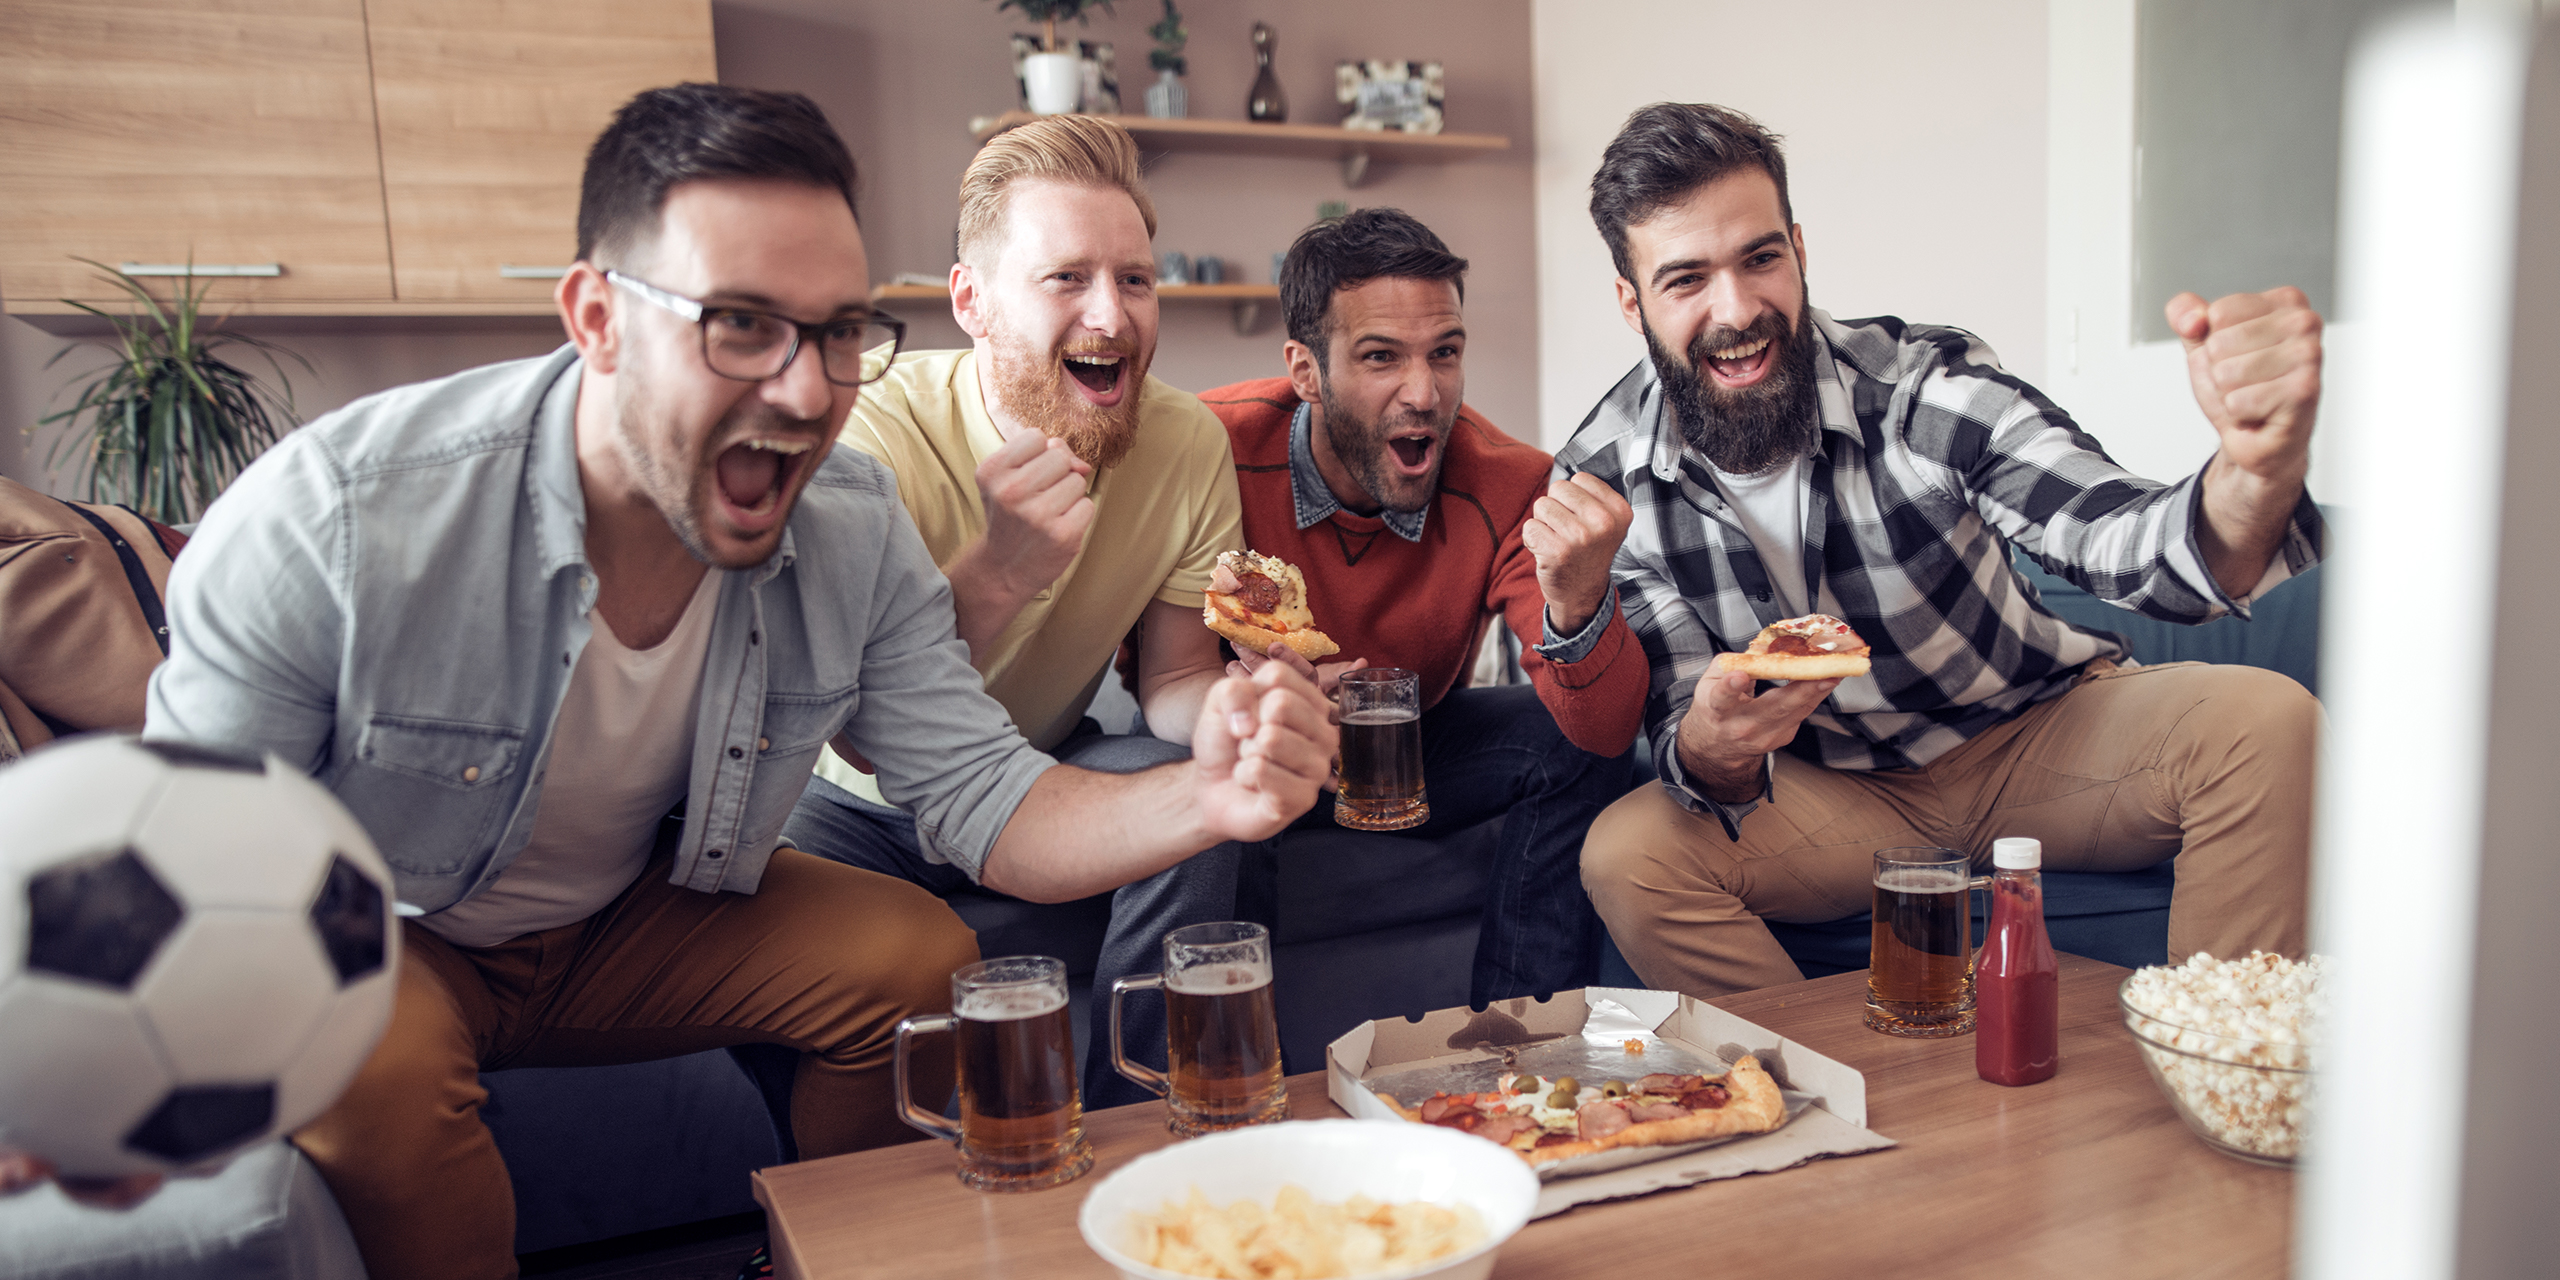 Friends eating pizza - hosting